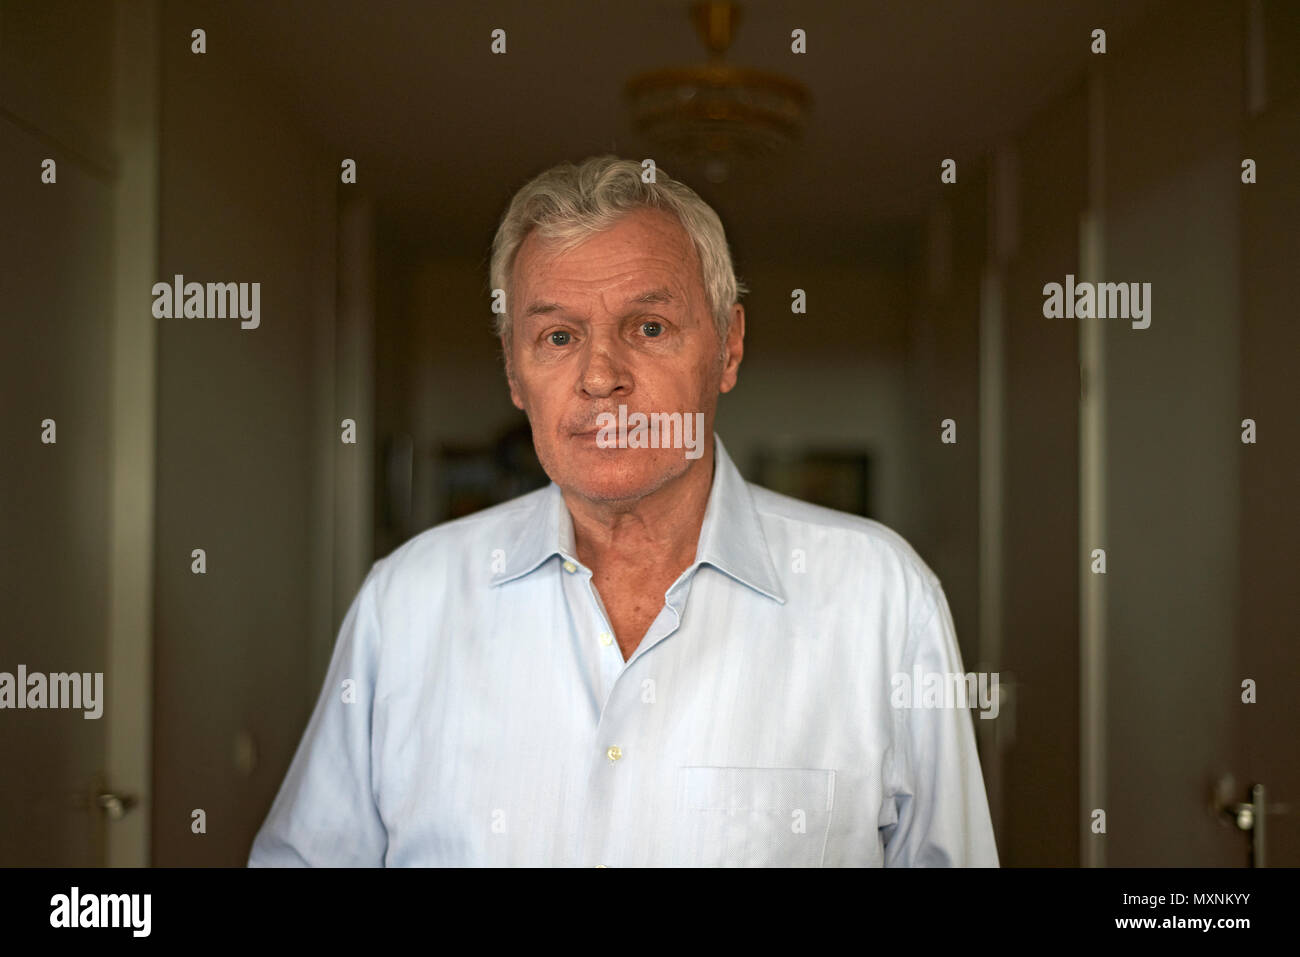 Portrait of an elderly man in a retirement home looking very lost and unsure as if he has forgotten things and has Alzheimer's - Stock Image